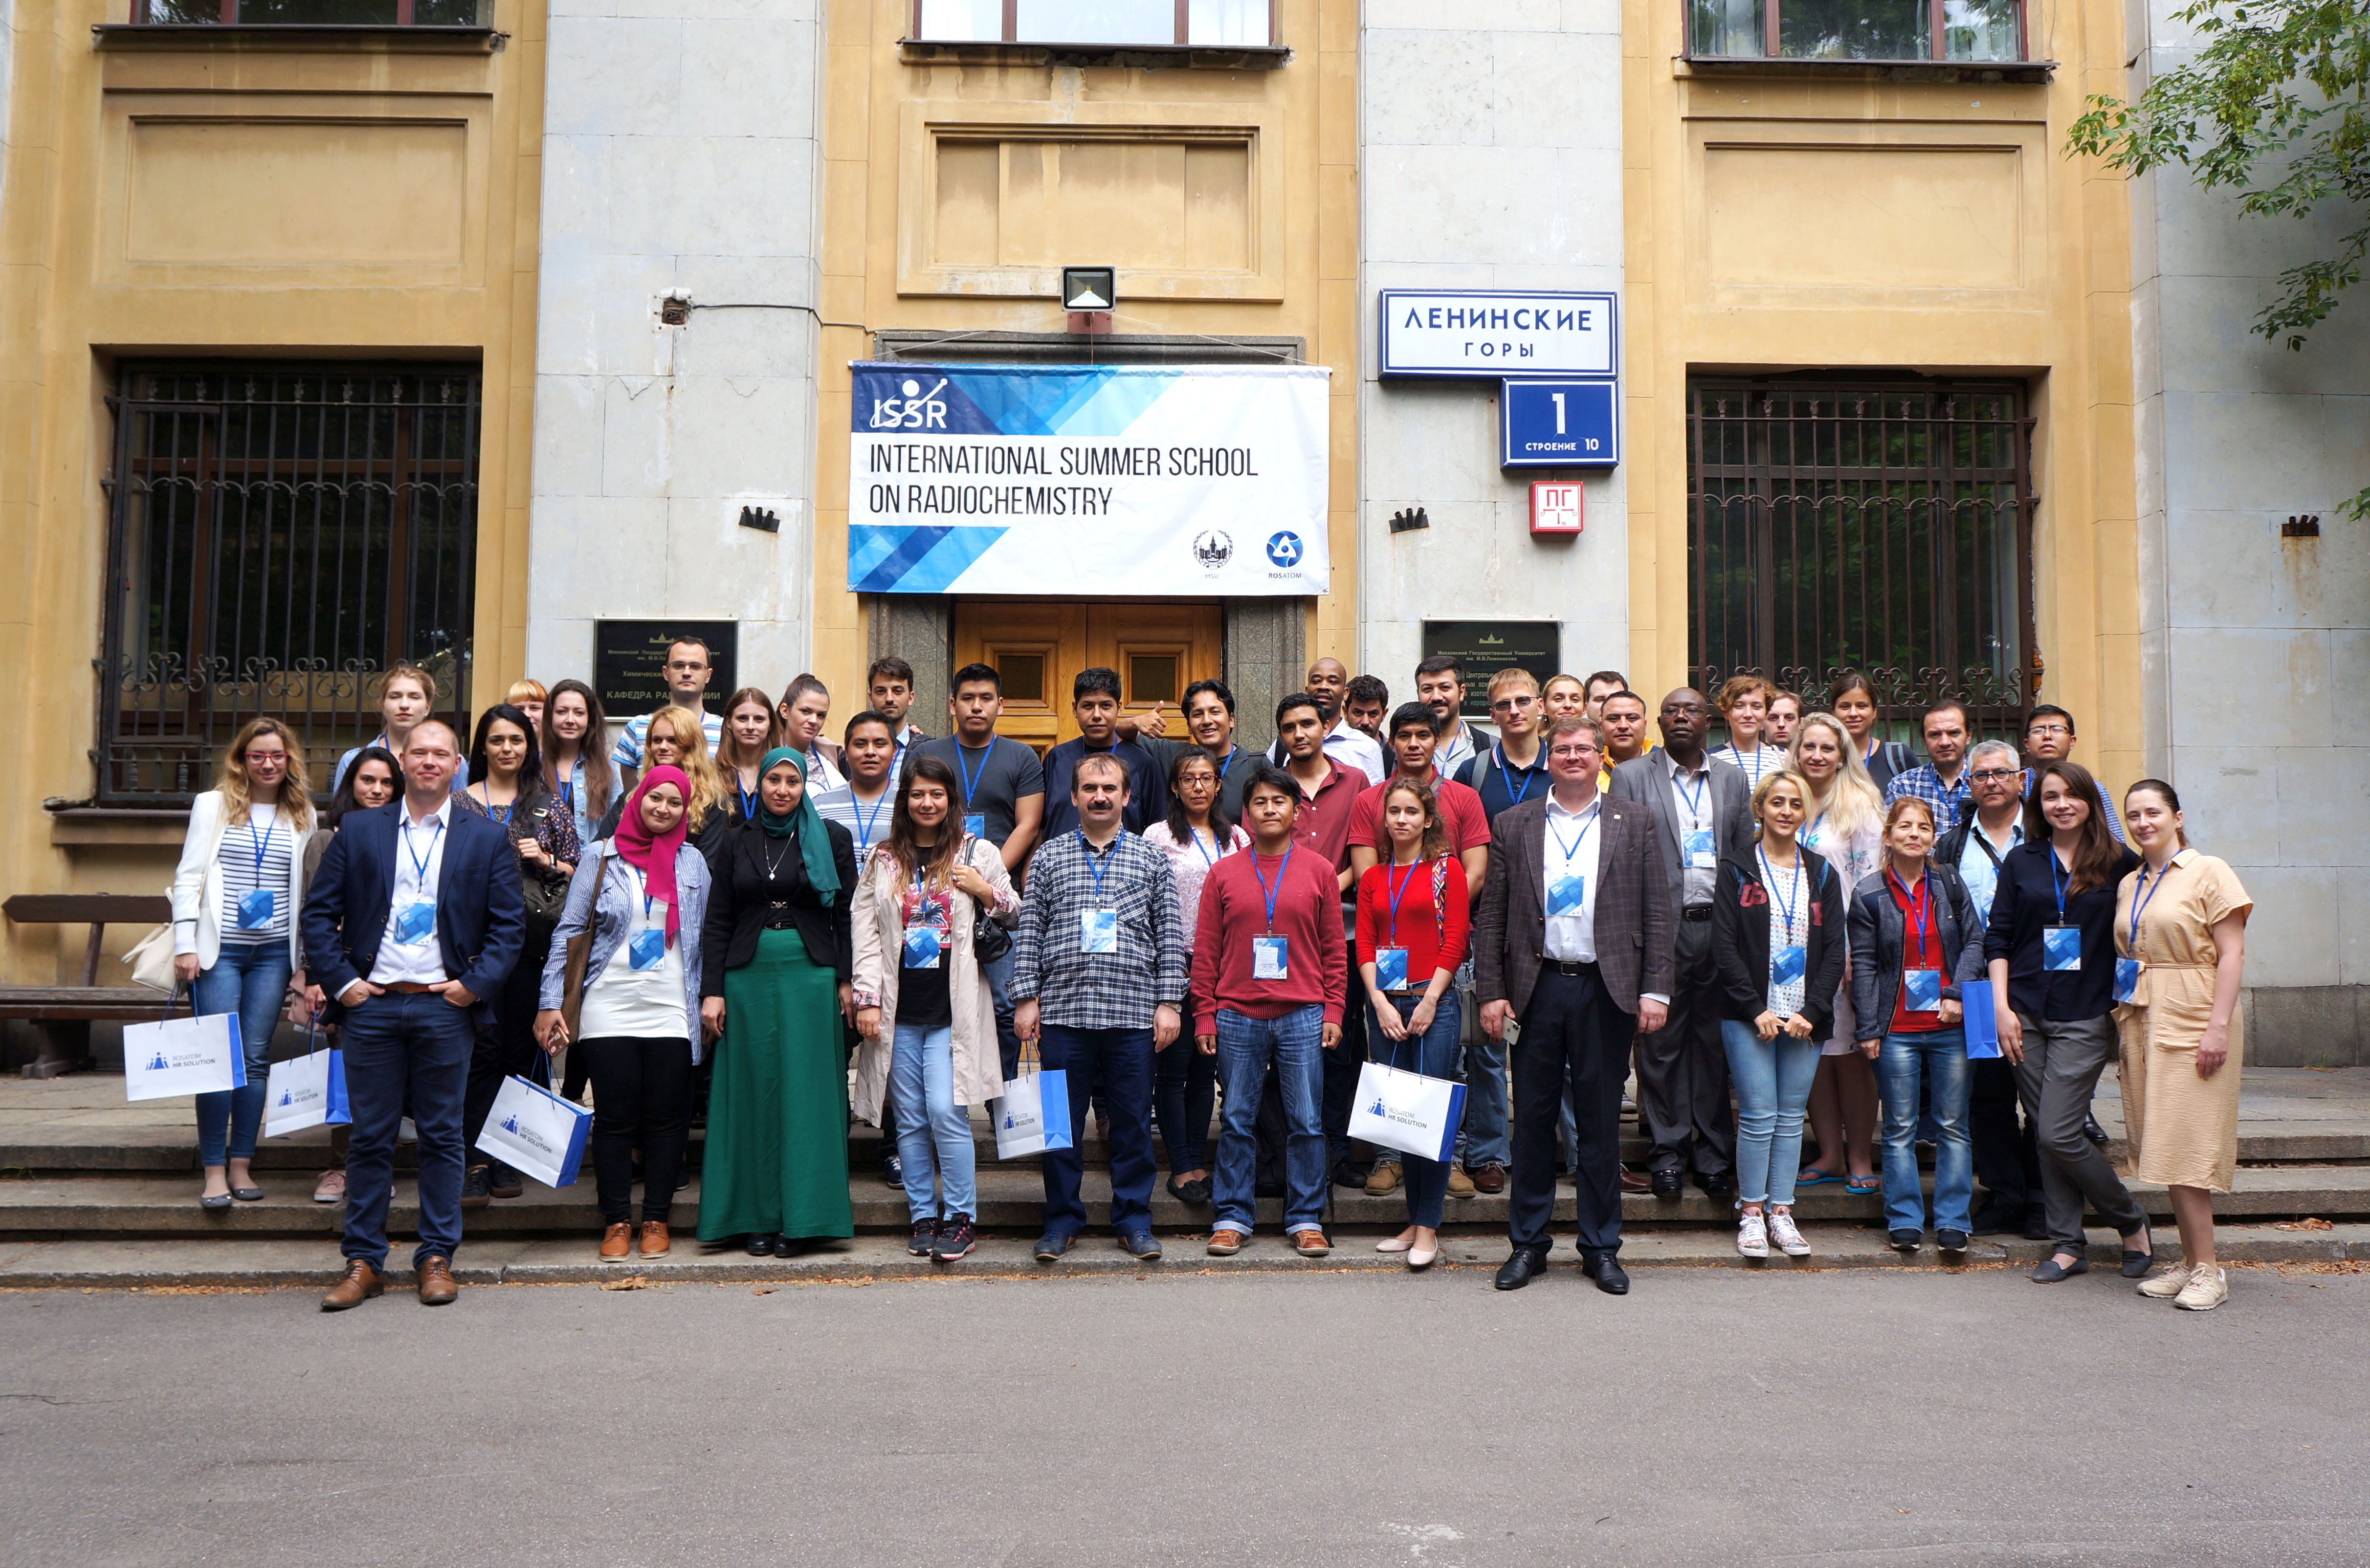 The First International Summer School on Radiochemistry (ISSR) with participants from Egypt and Turkey wrapped up in Moscow